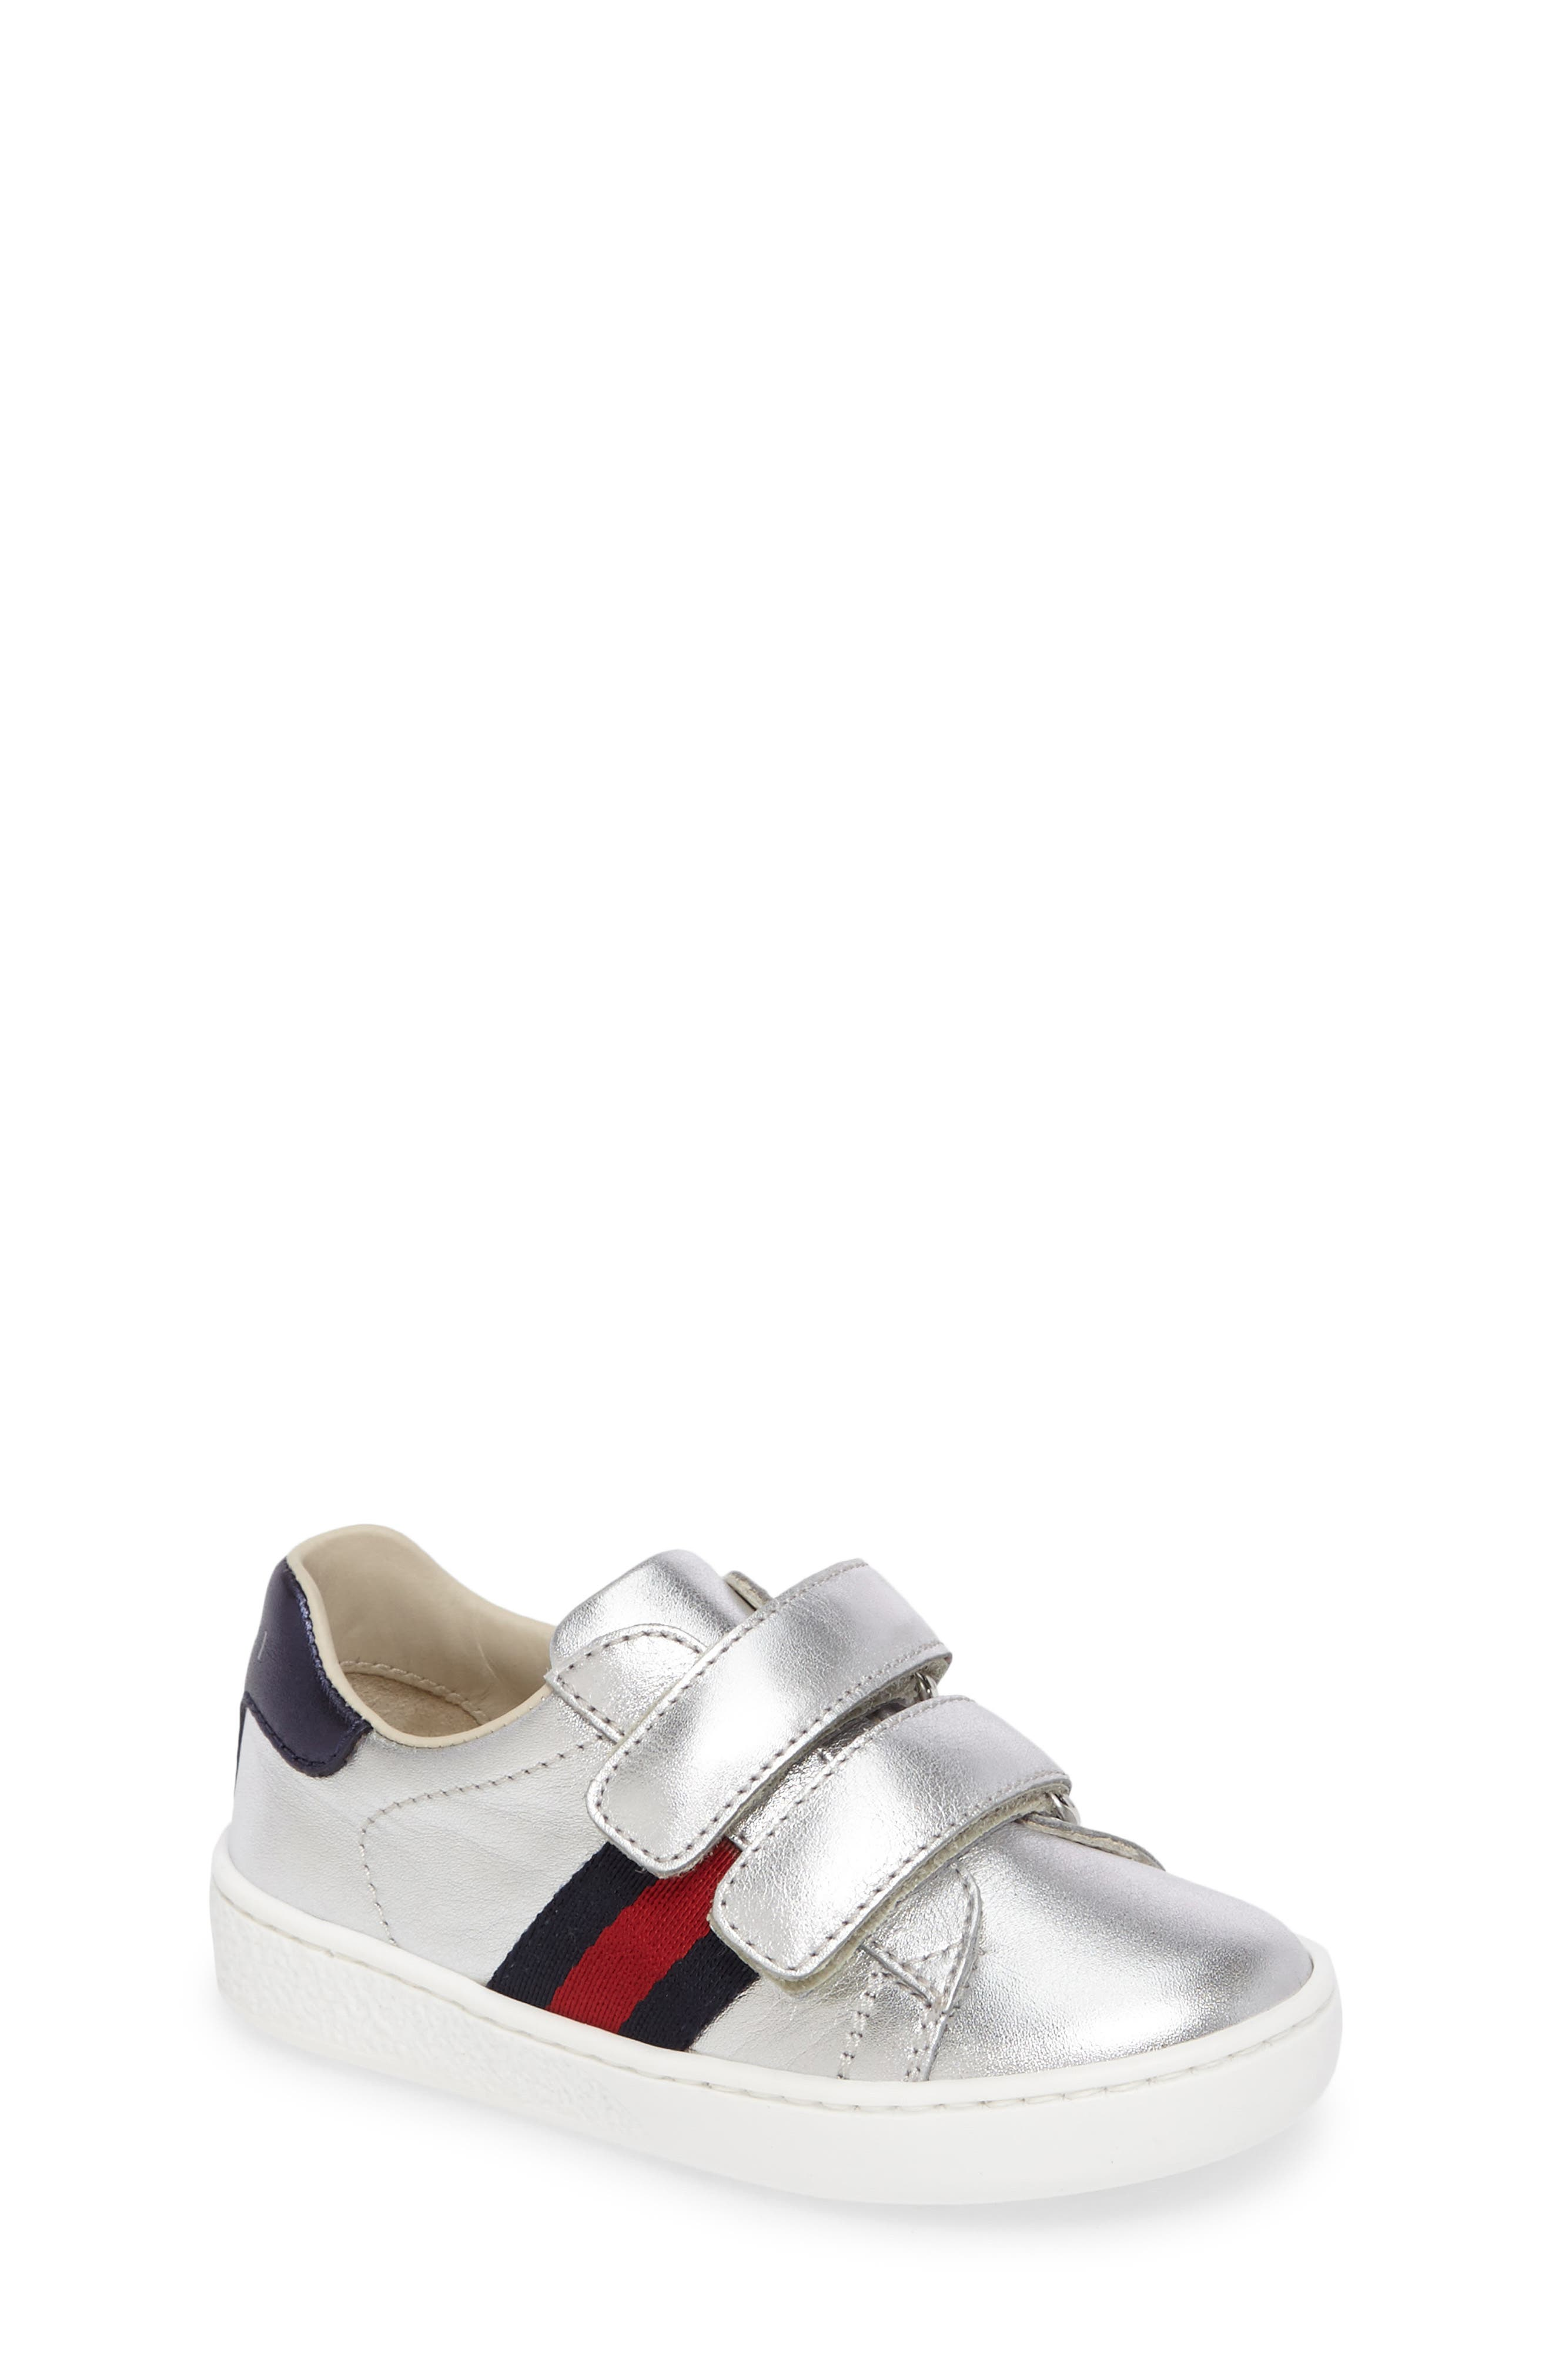 Main Image - Gucci New Ace Sneaker (Baby, Walker, Toddler & Little Kid)